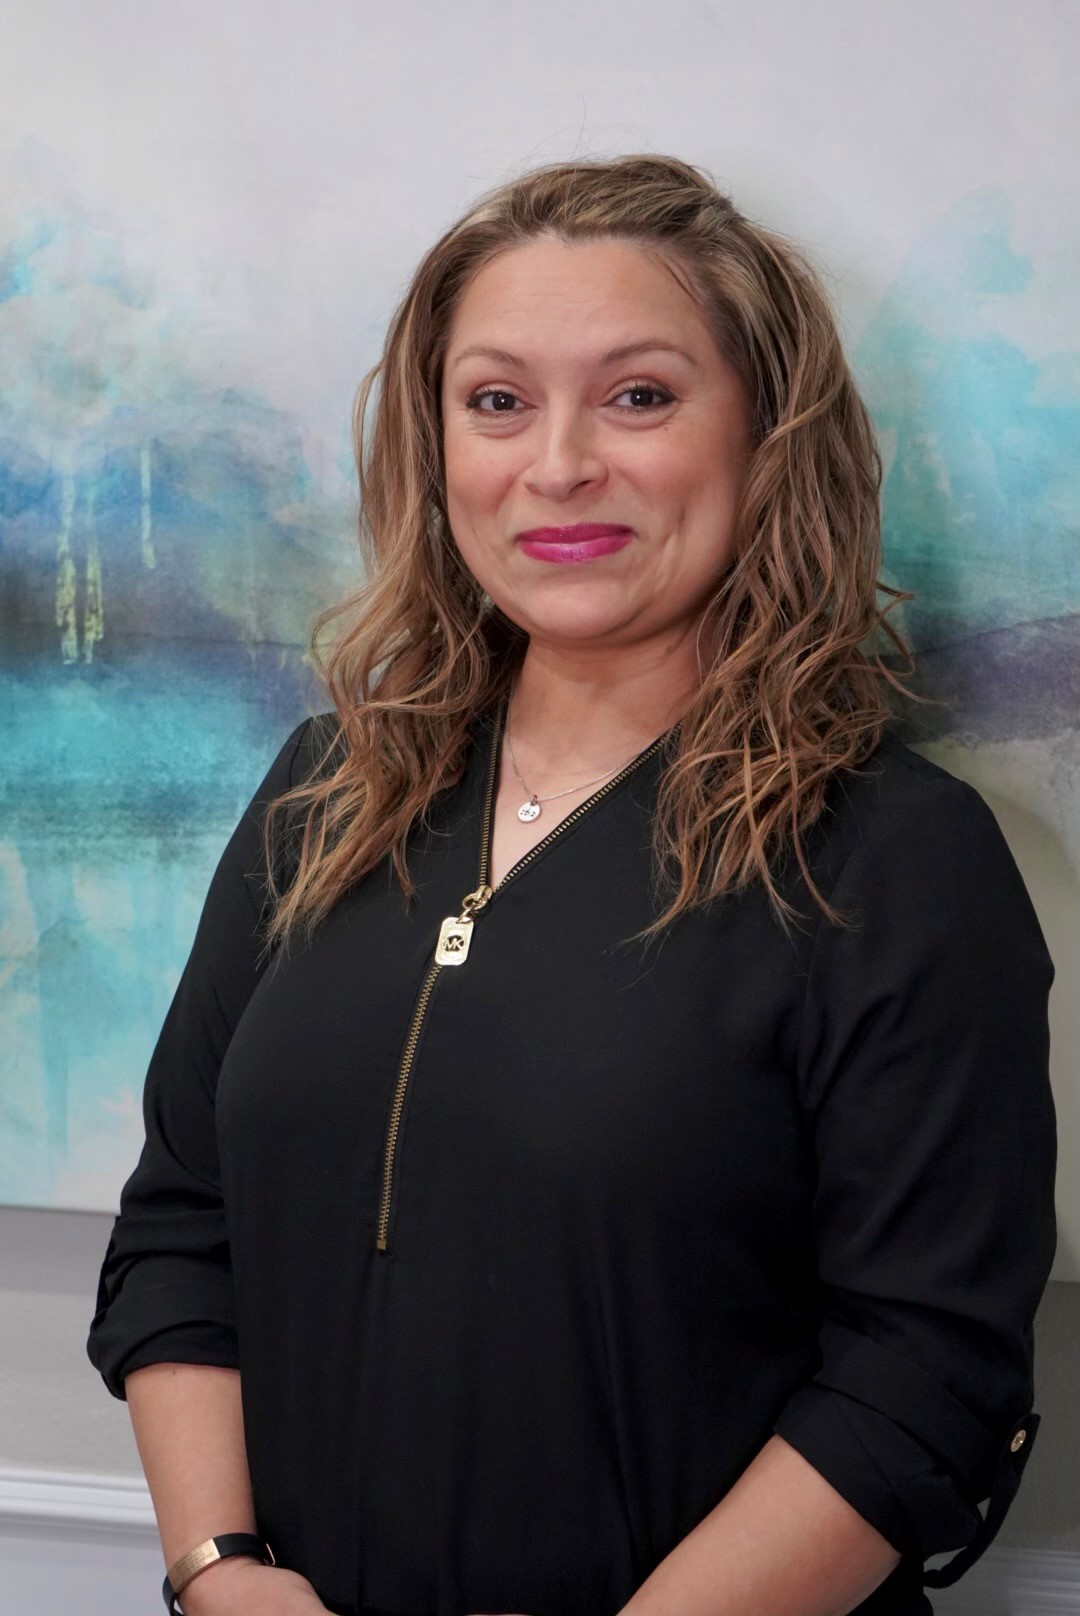 Blanca, employee at Lauren Standefer & Associates DDS in McKinney, Texas